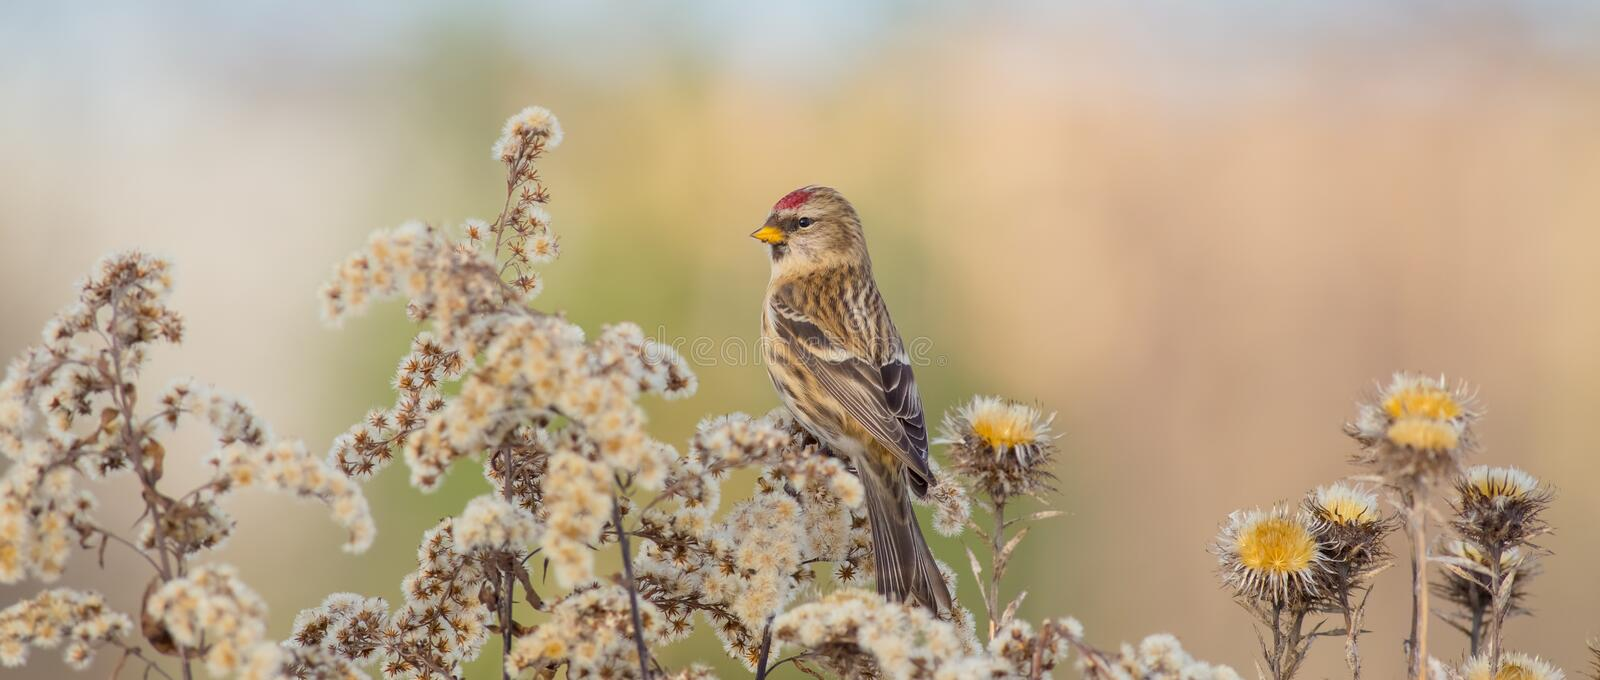 Common Redpoll - Acanthis flammea. / at a bird feeder in winter time stock images